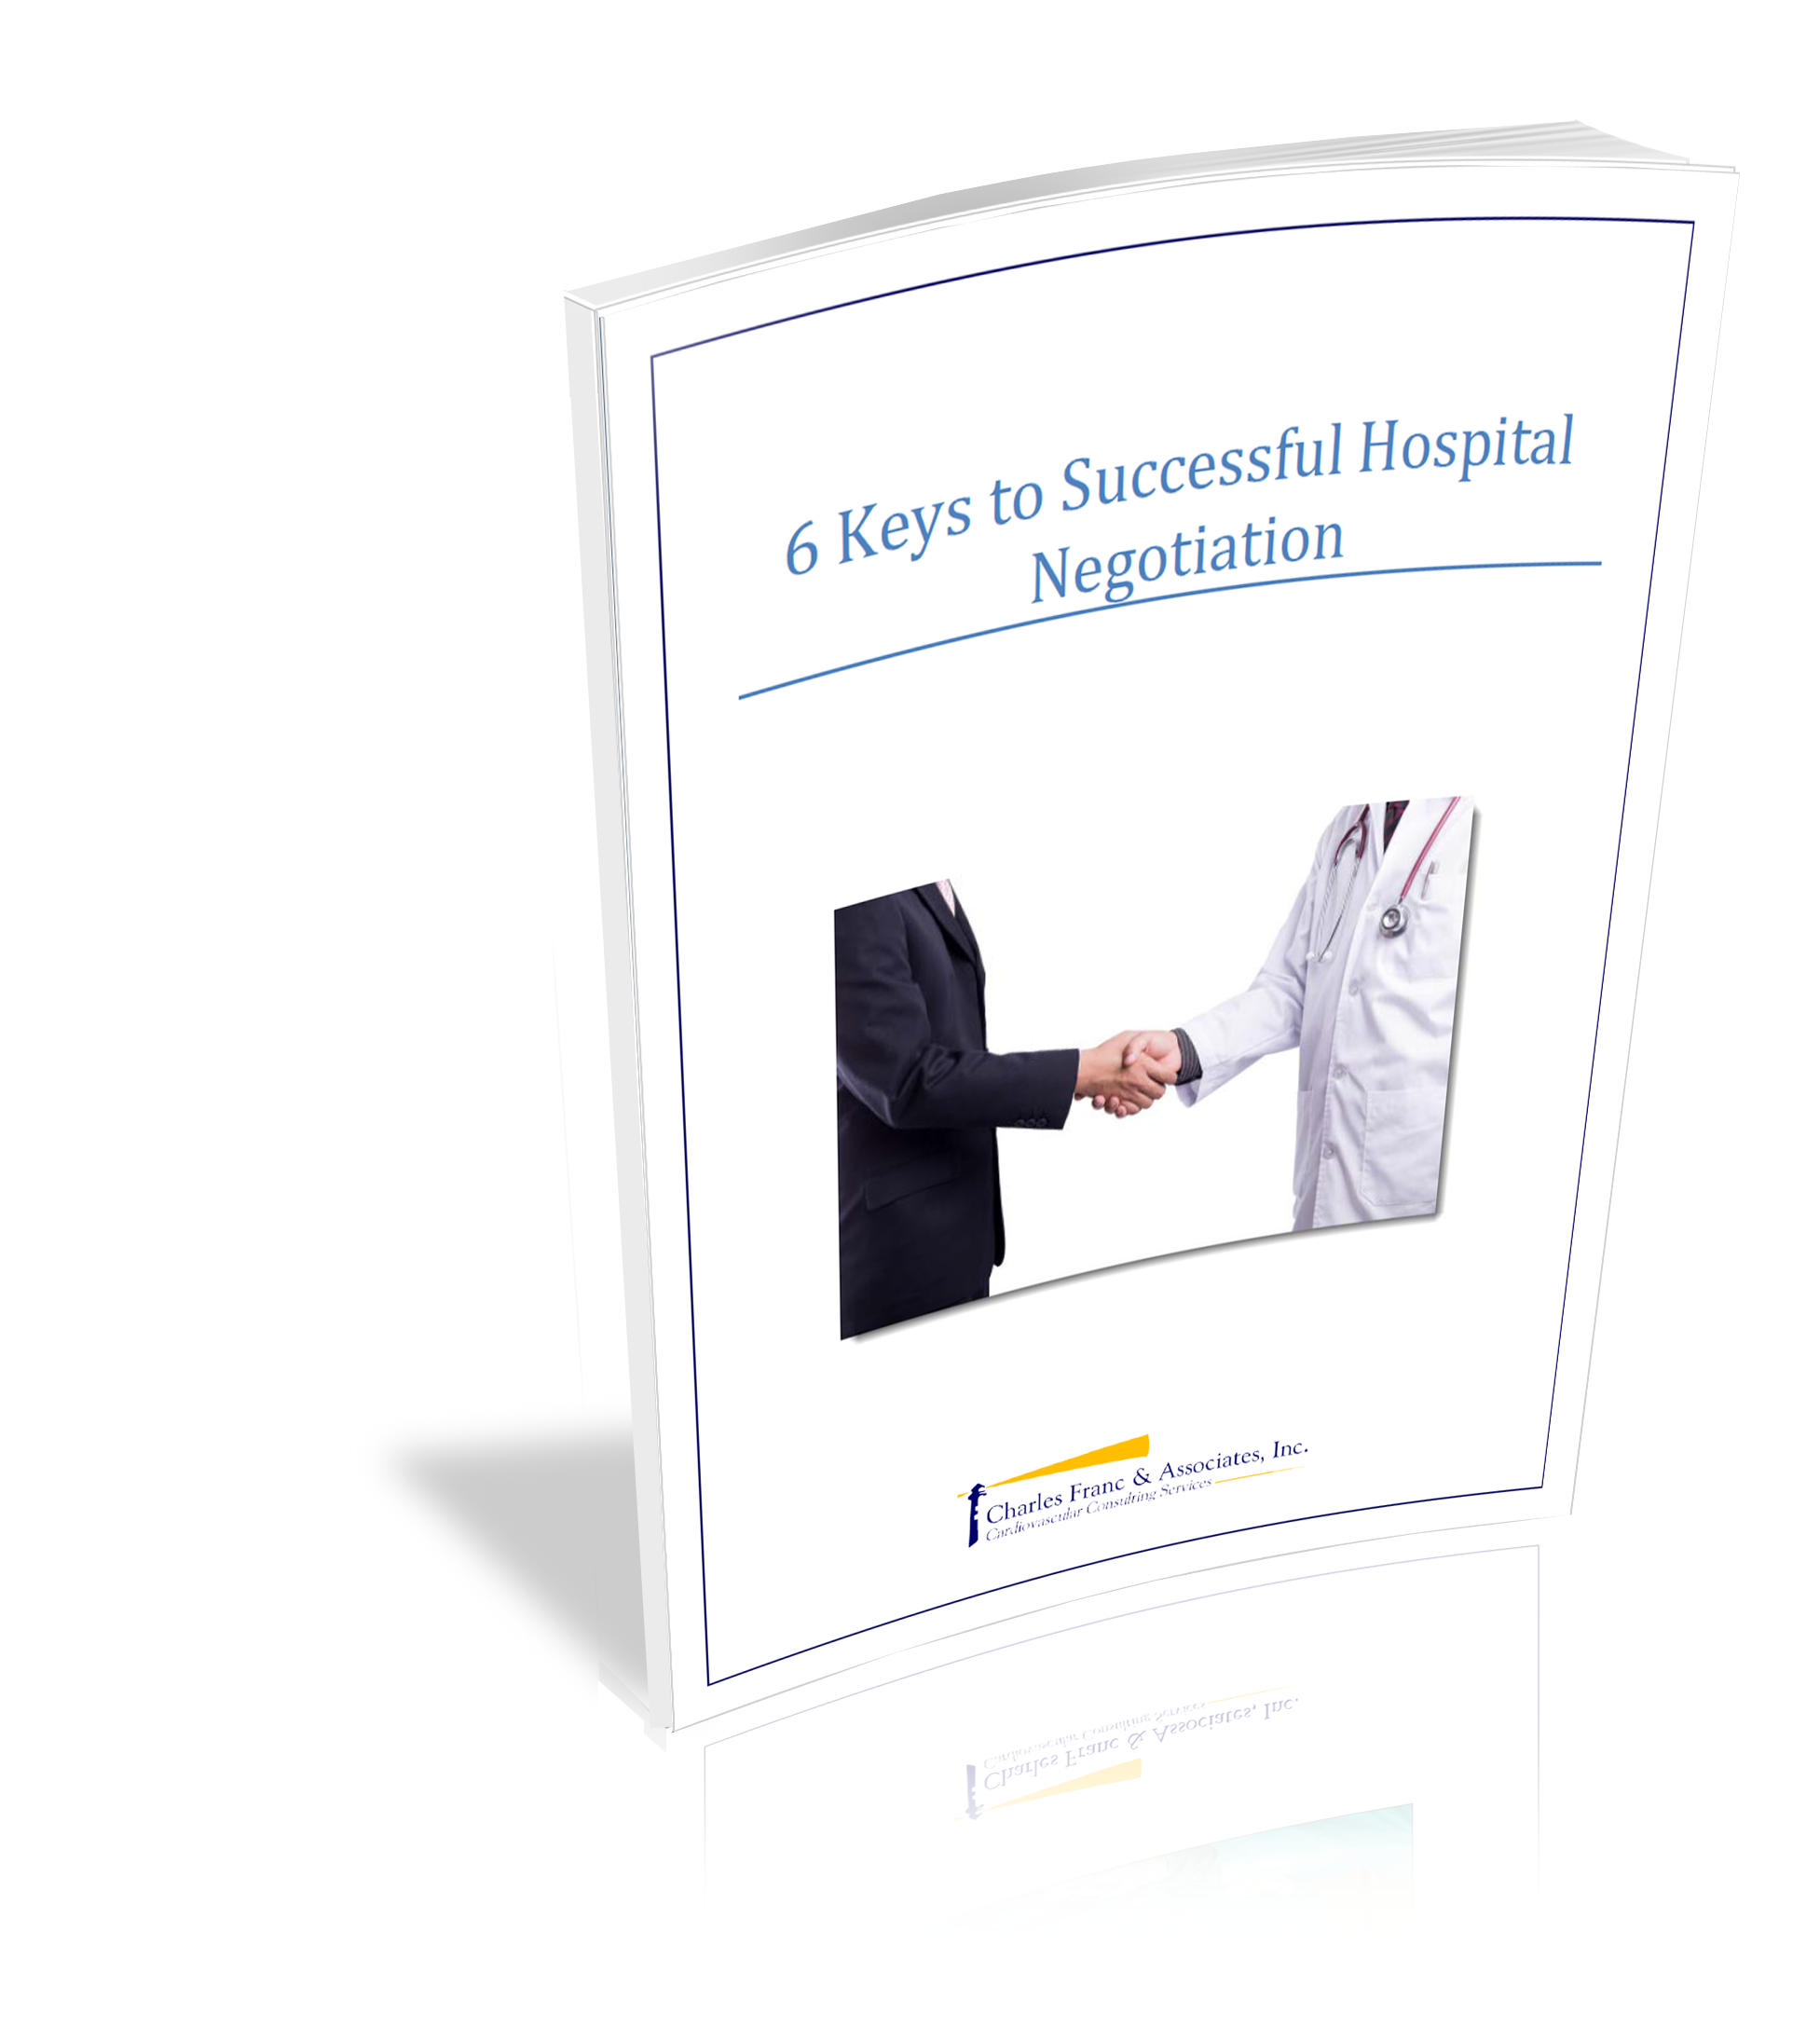 6-keys-to-successful-negotiation-book-thin.png